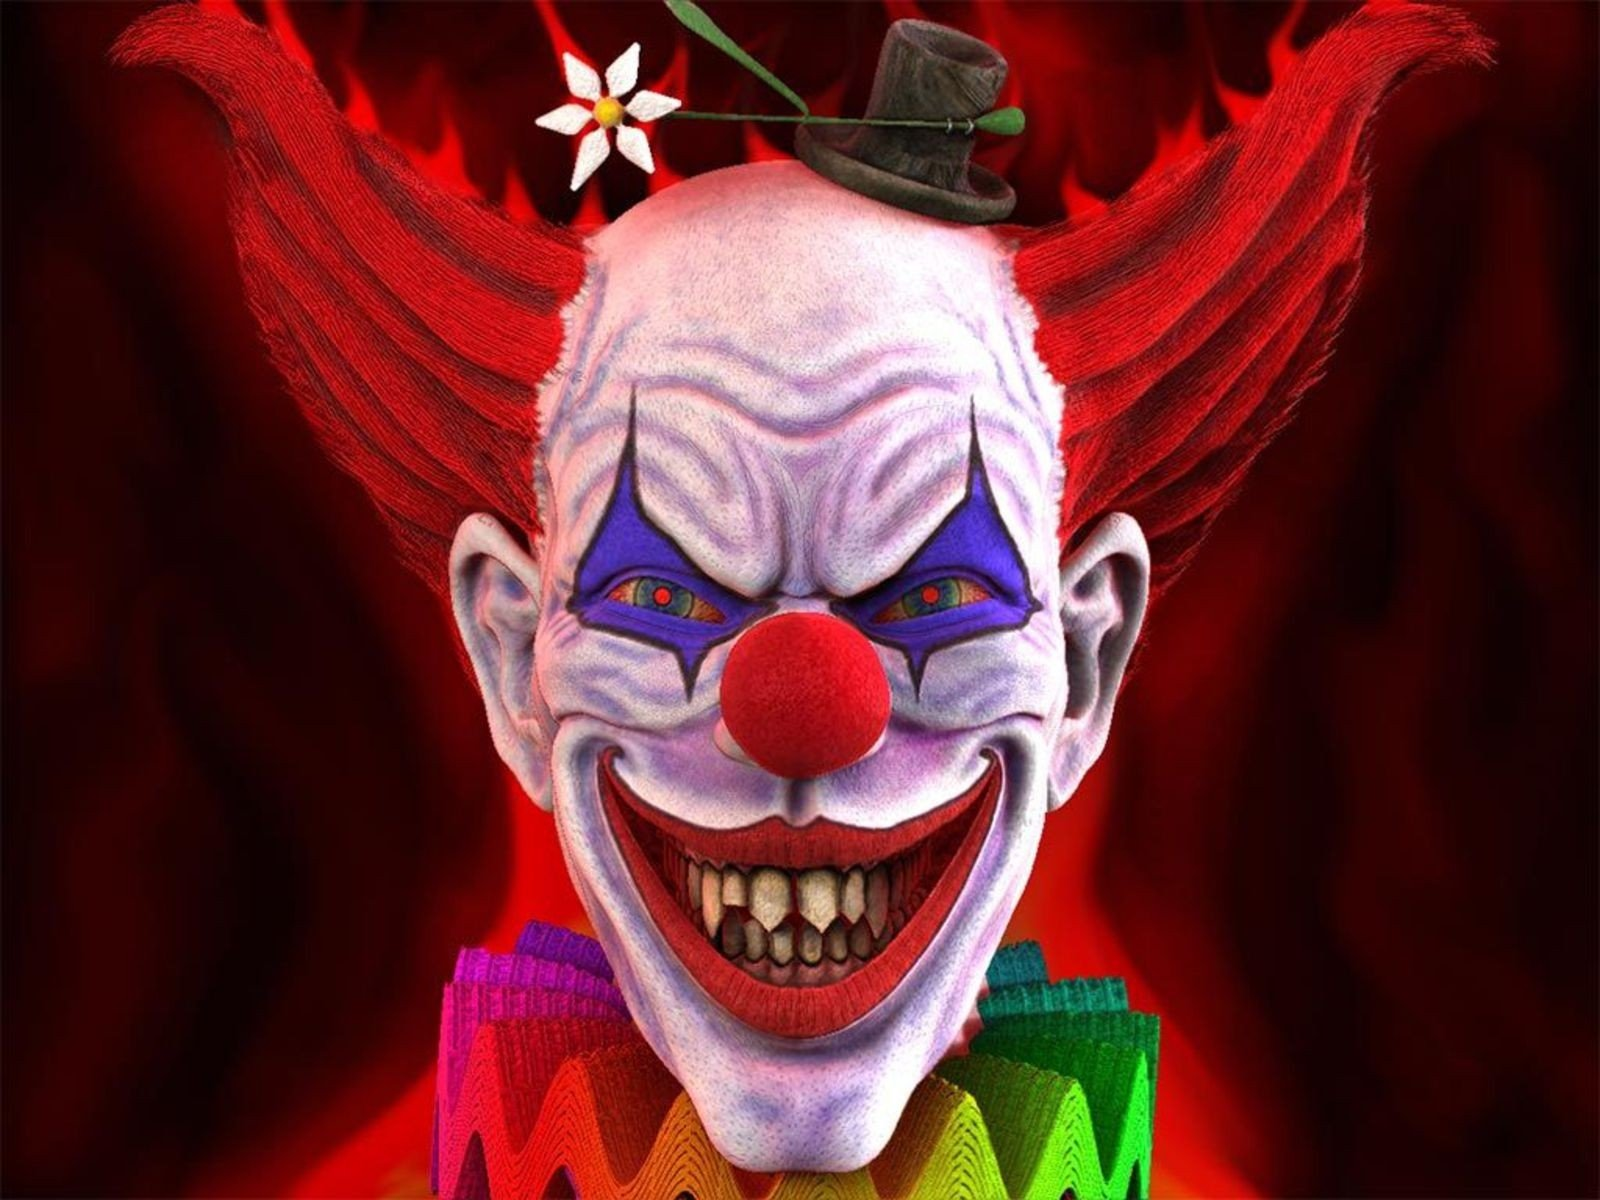 CGI - Clown  Wallpaper